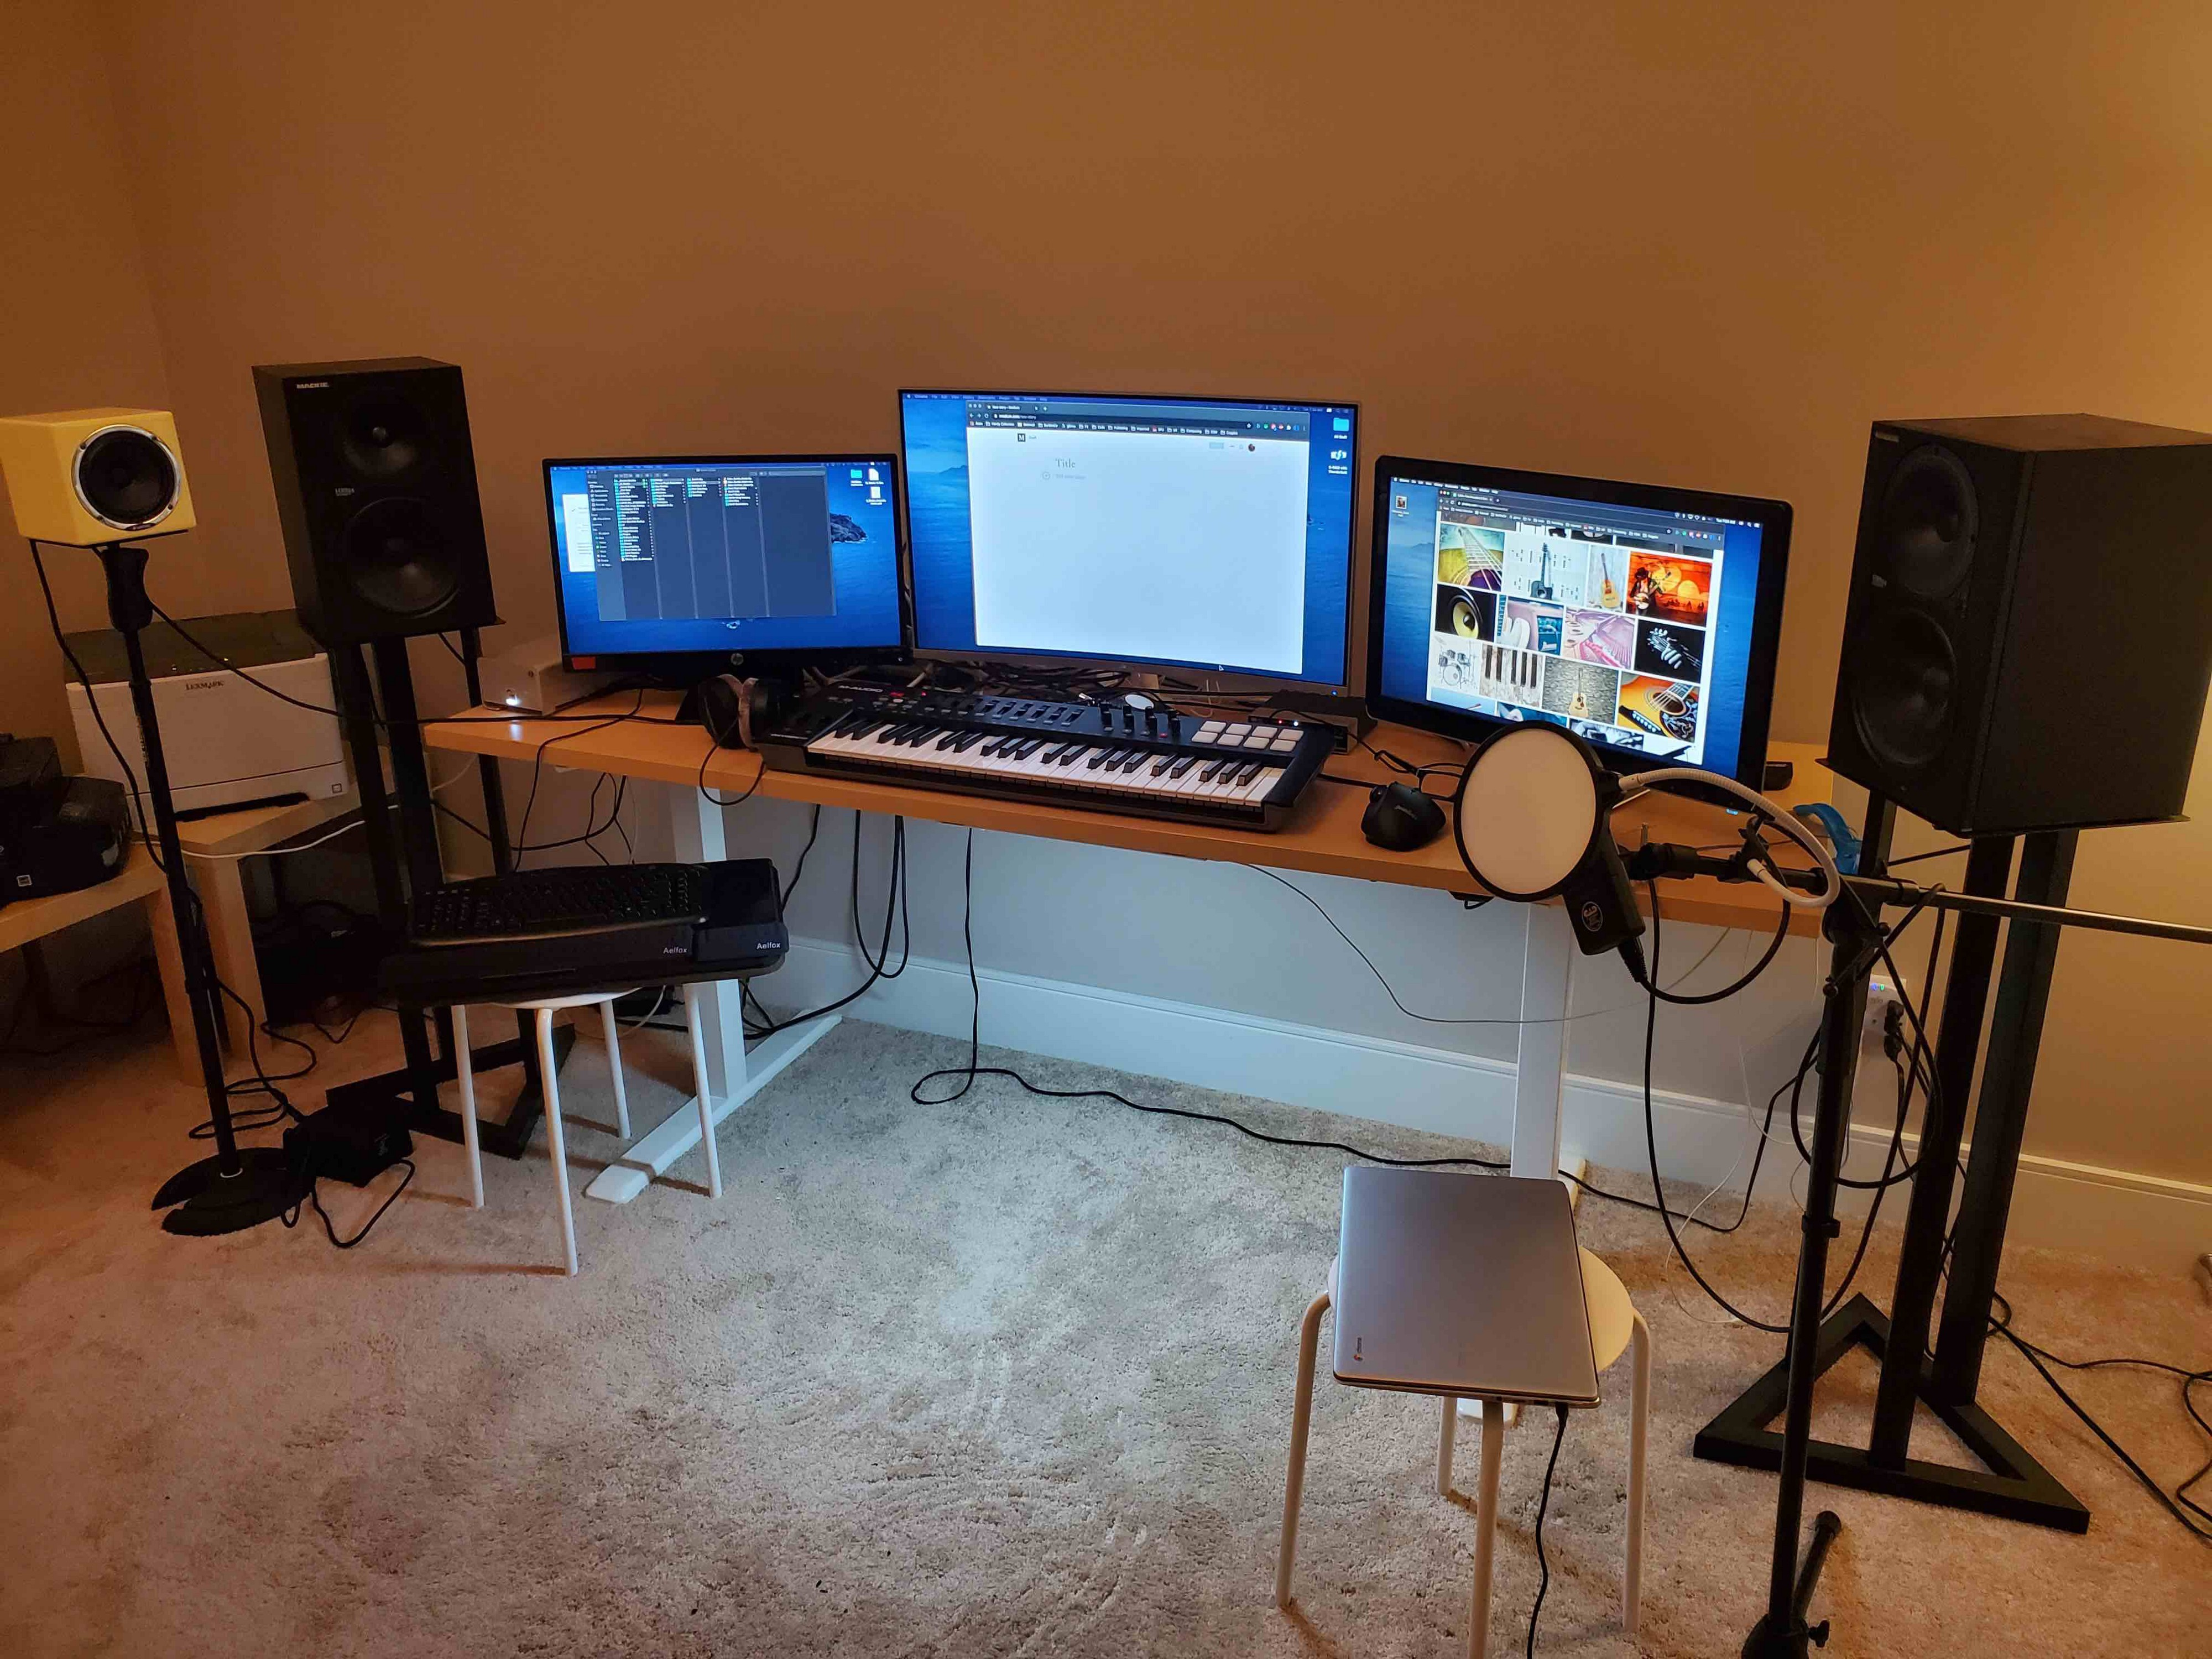 Room Acoustics And Bedroom Music Production You Don T Need What You Think You Need By Michael Myk Eff Filimowicz Phd Sound And Design Oct 2020 Medium